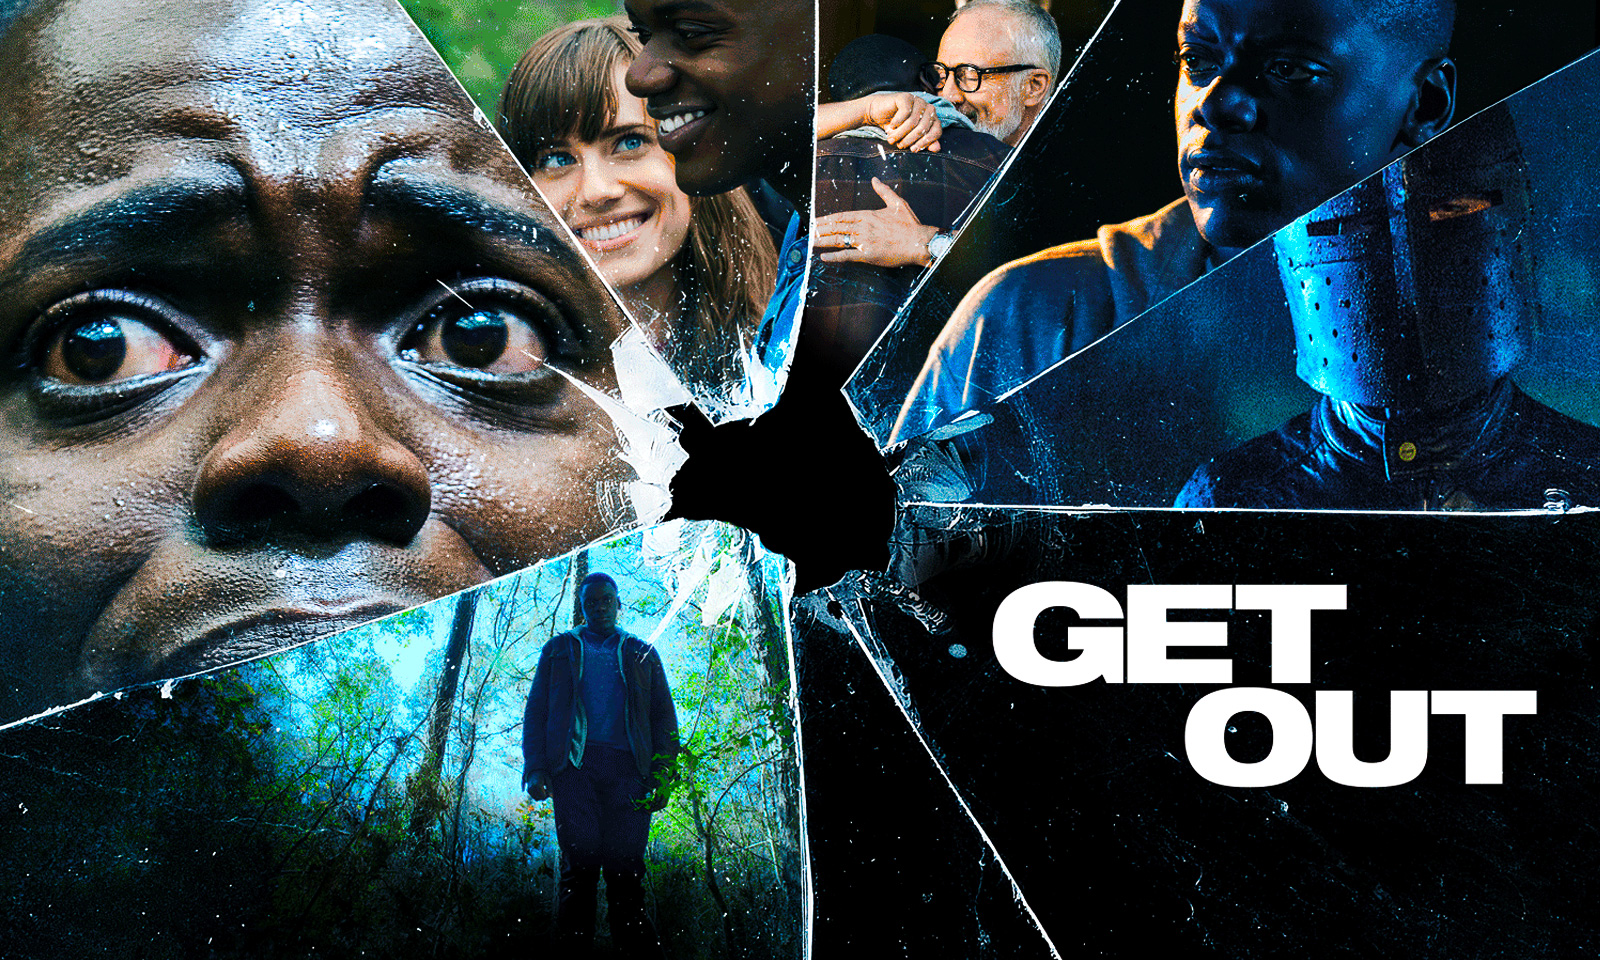 Get out, Zbeži!, Jordan Peele, Universal Pictures